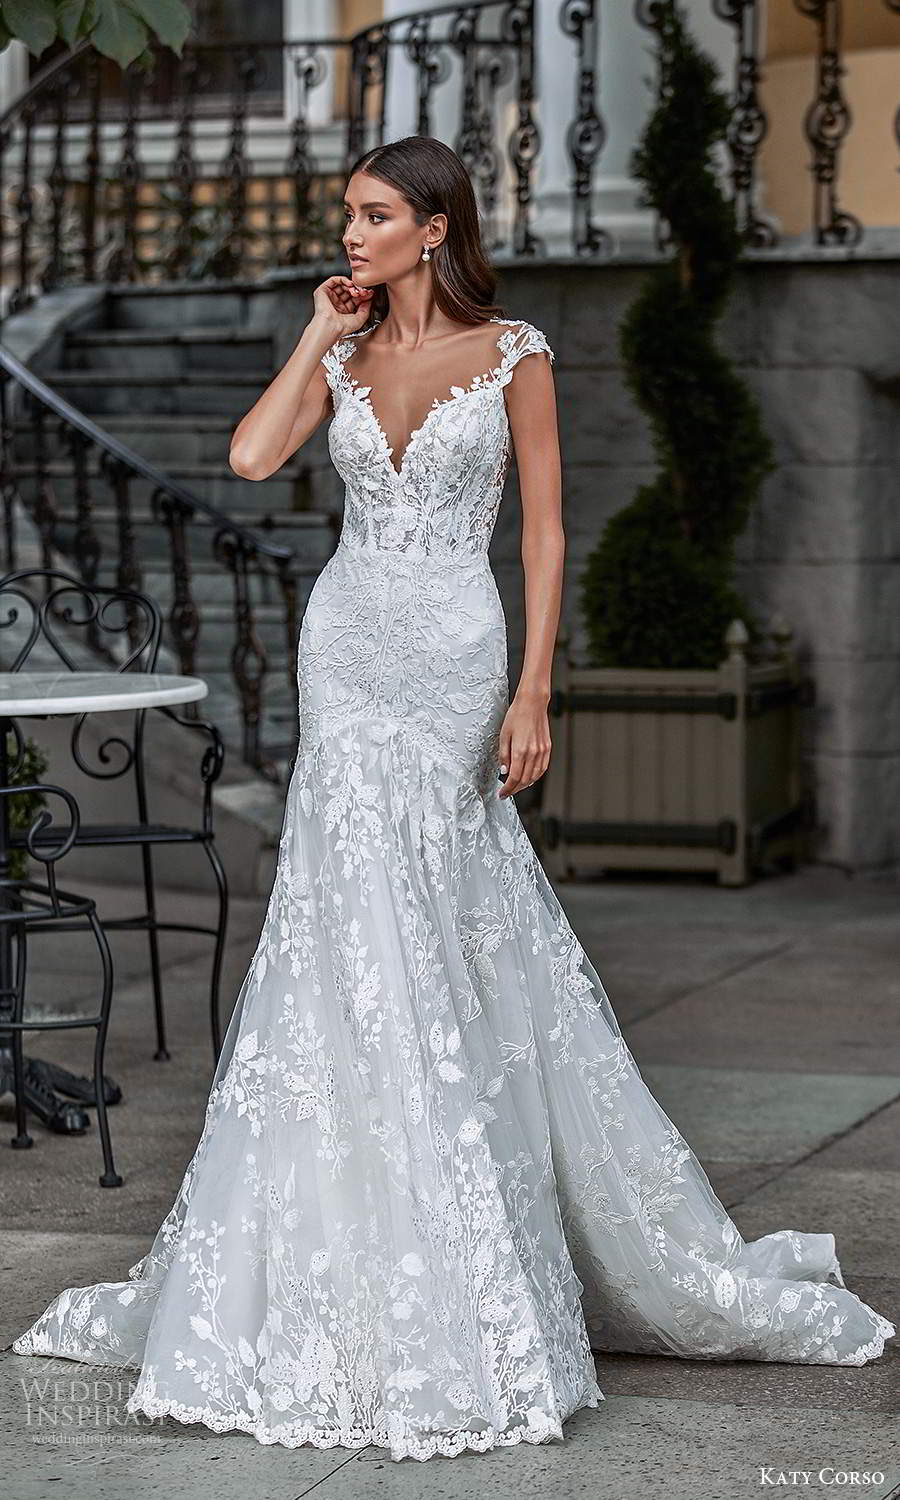 katy corso 2021 bridal cap sleeves plunging sweetheart neckline fully embellished lace fit flare a line wedding dress chapel train (17) mv